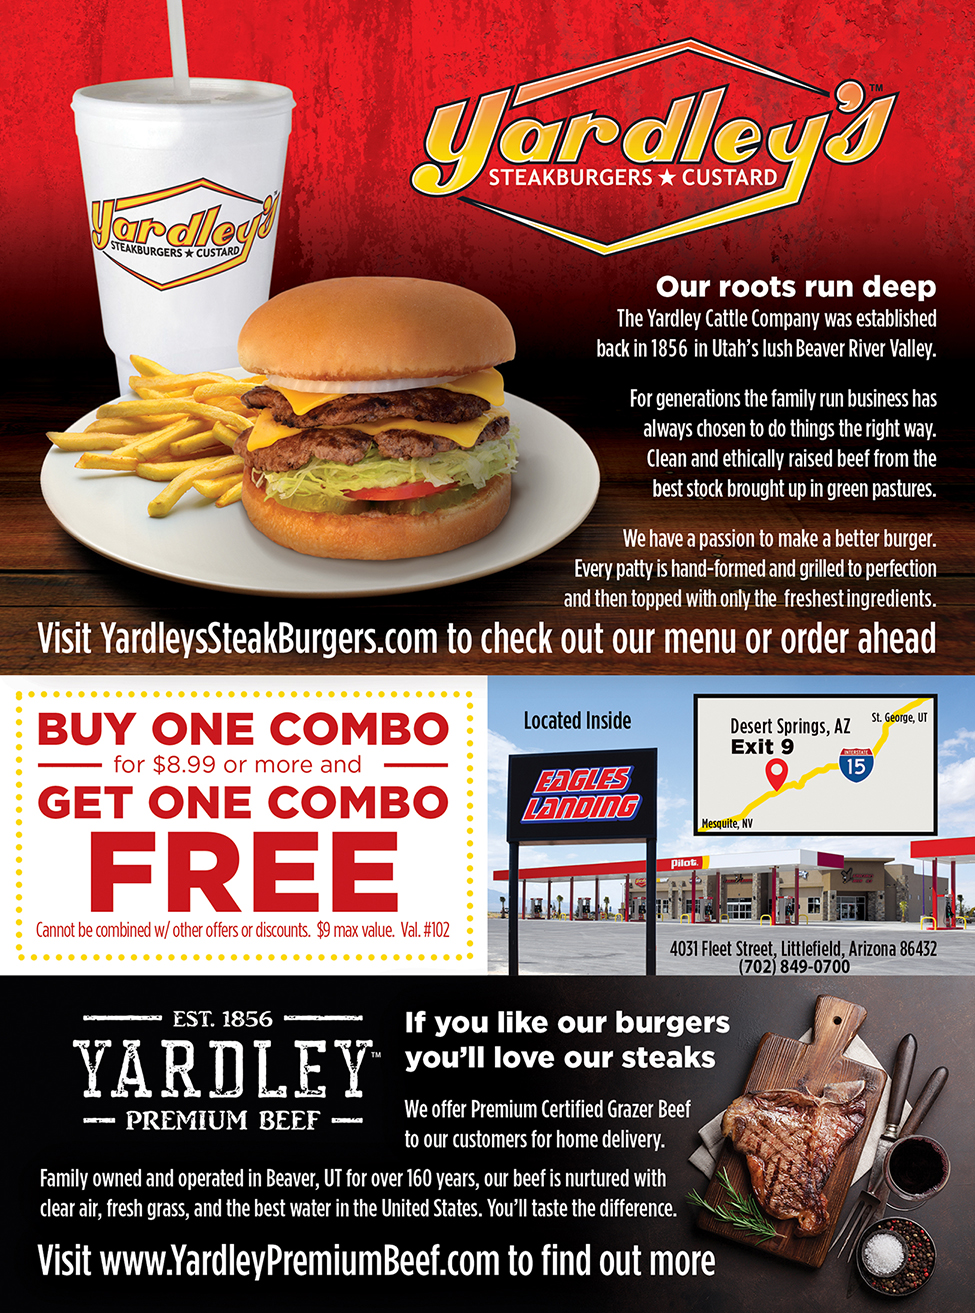 Yardley's Steakburgers and Custard